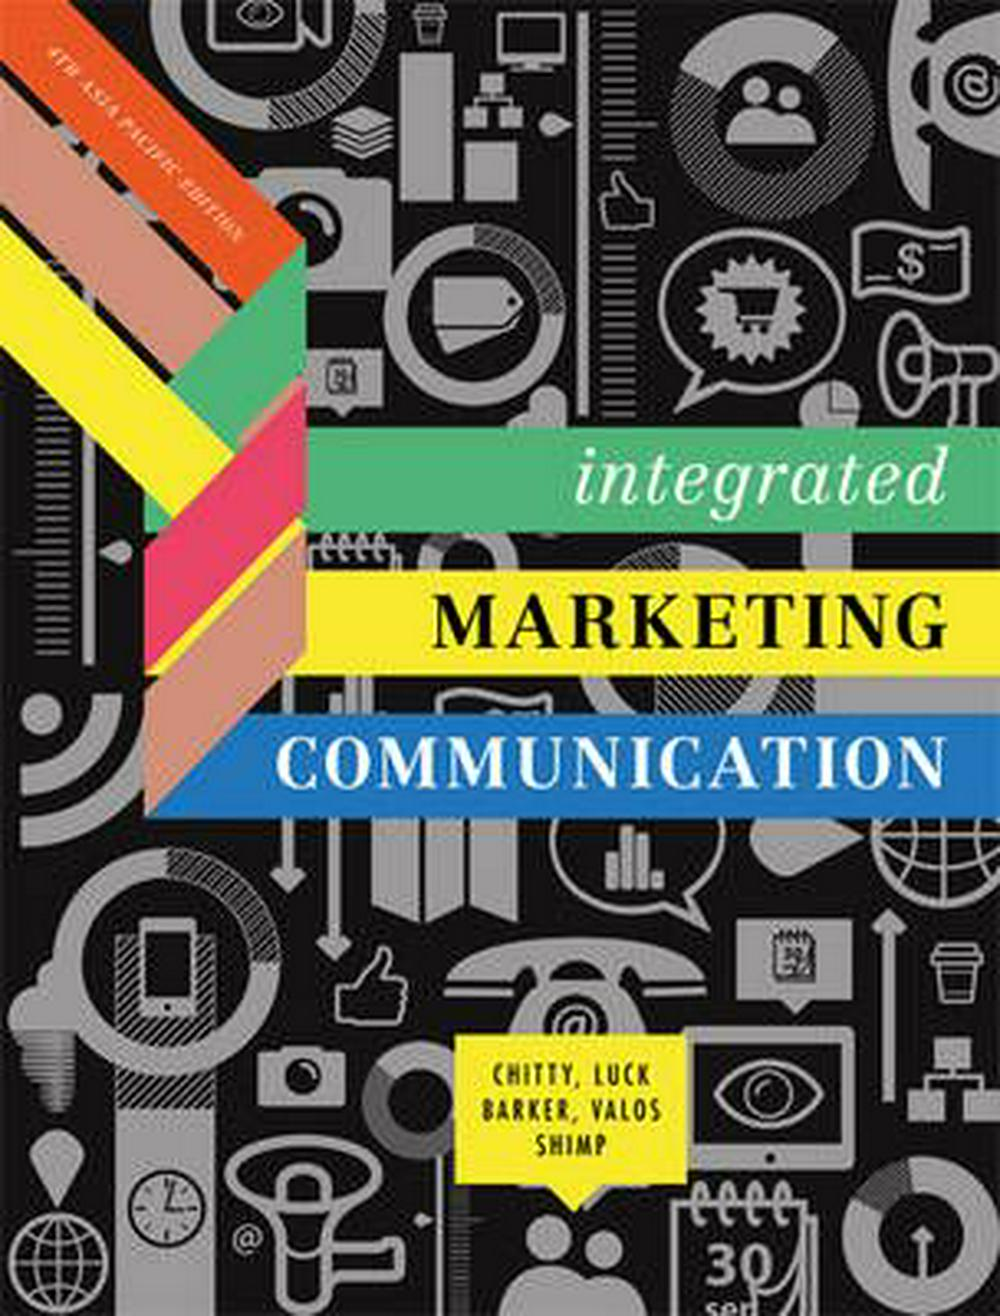 Integrated Marketing Communications with Student Resource Access 12 Months by William Chitty, Edwina Luck, Nigel Barker, Michael Valos, Terence A. Shimp, J. Craig Andrews, ISBN: 9780170254304